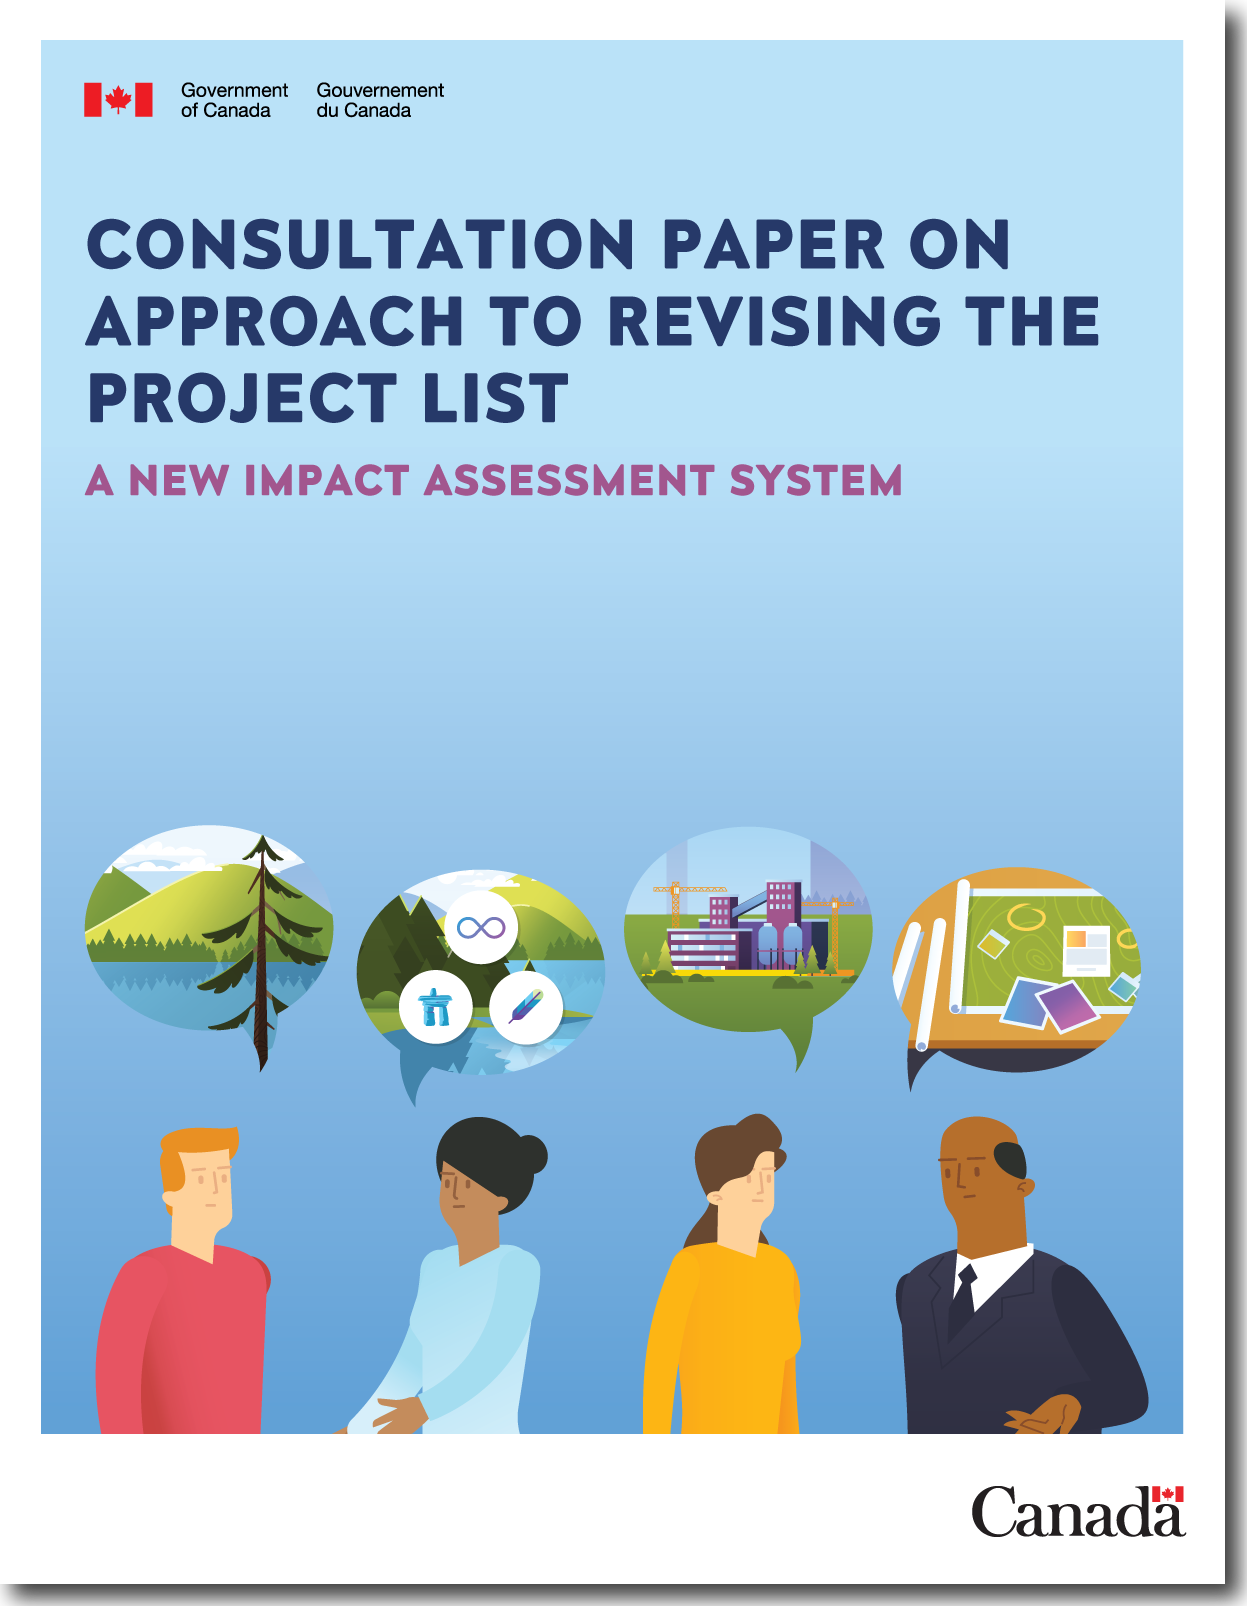 Consultation Paper on Approach to Revising the Project List